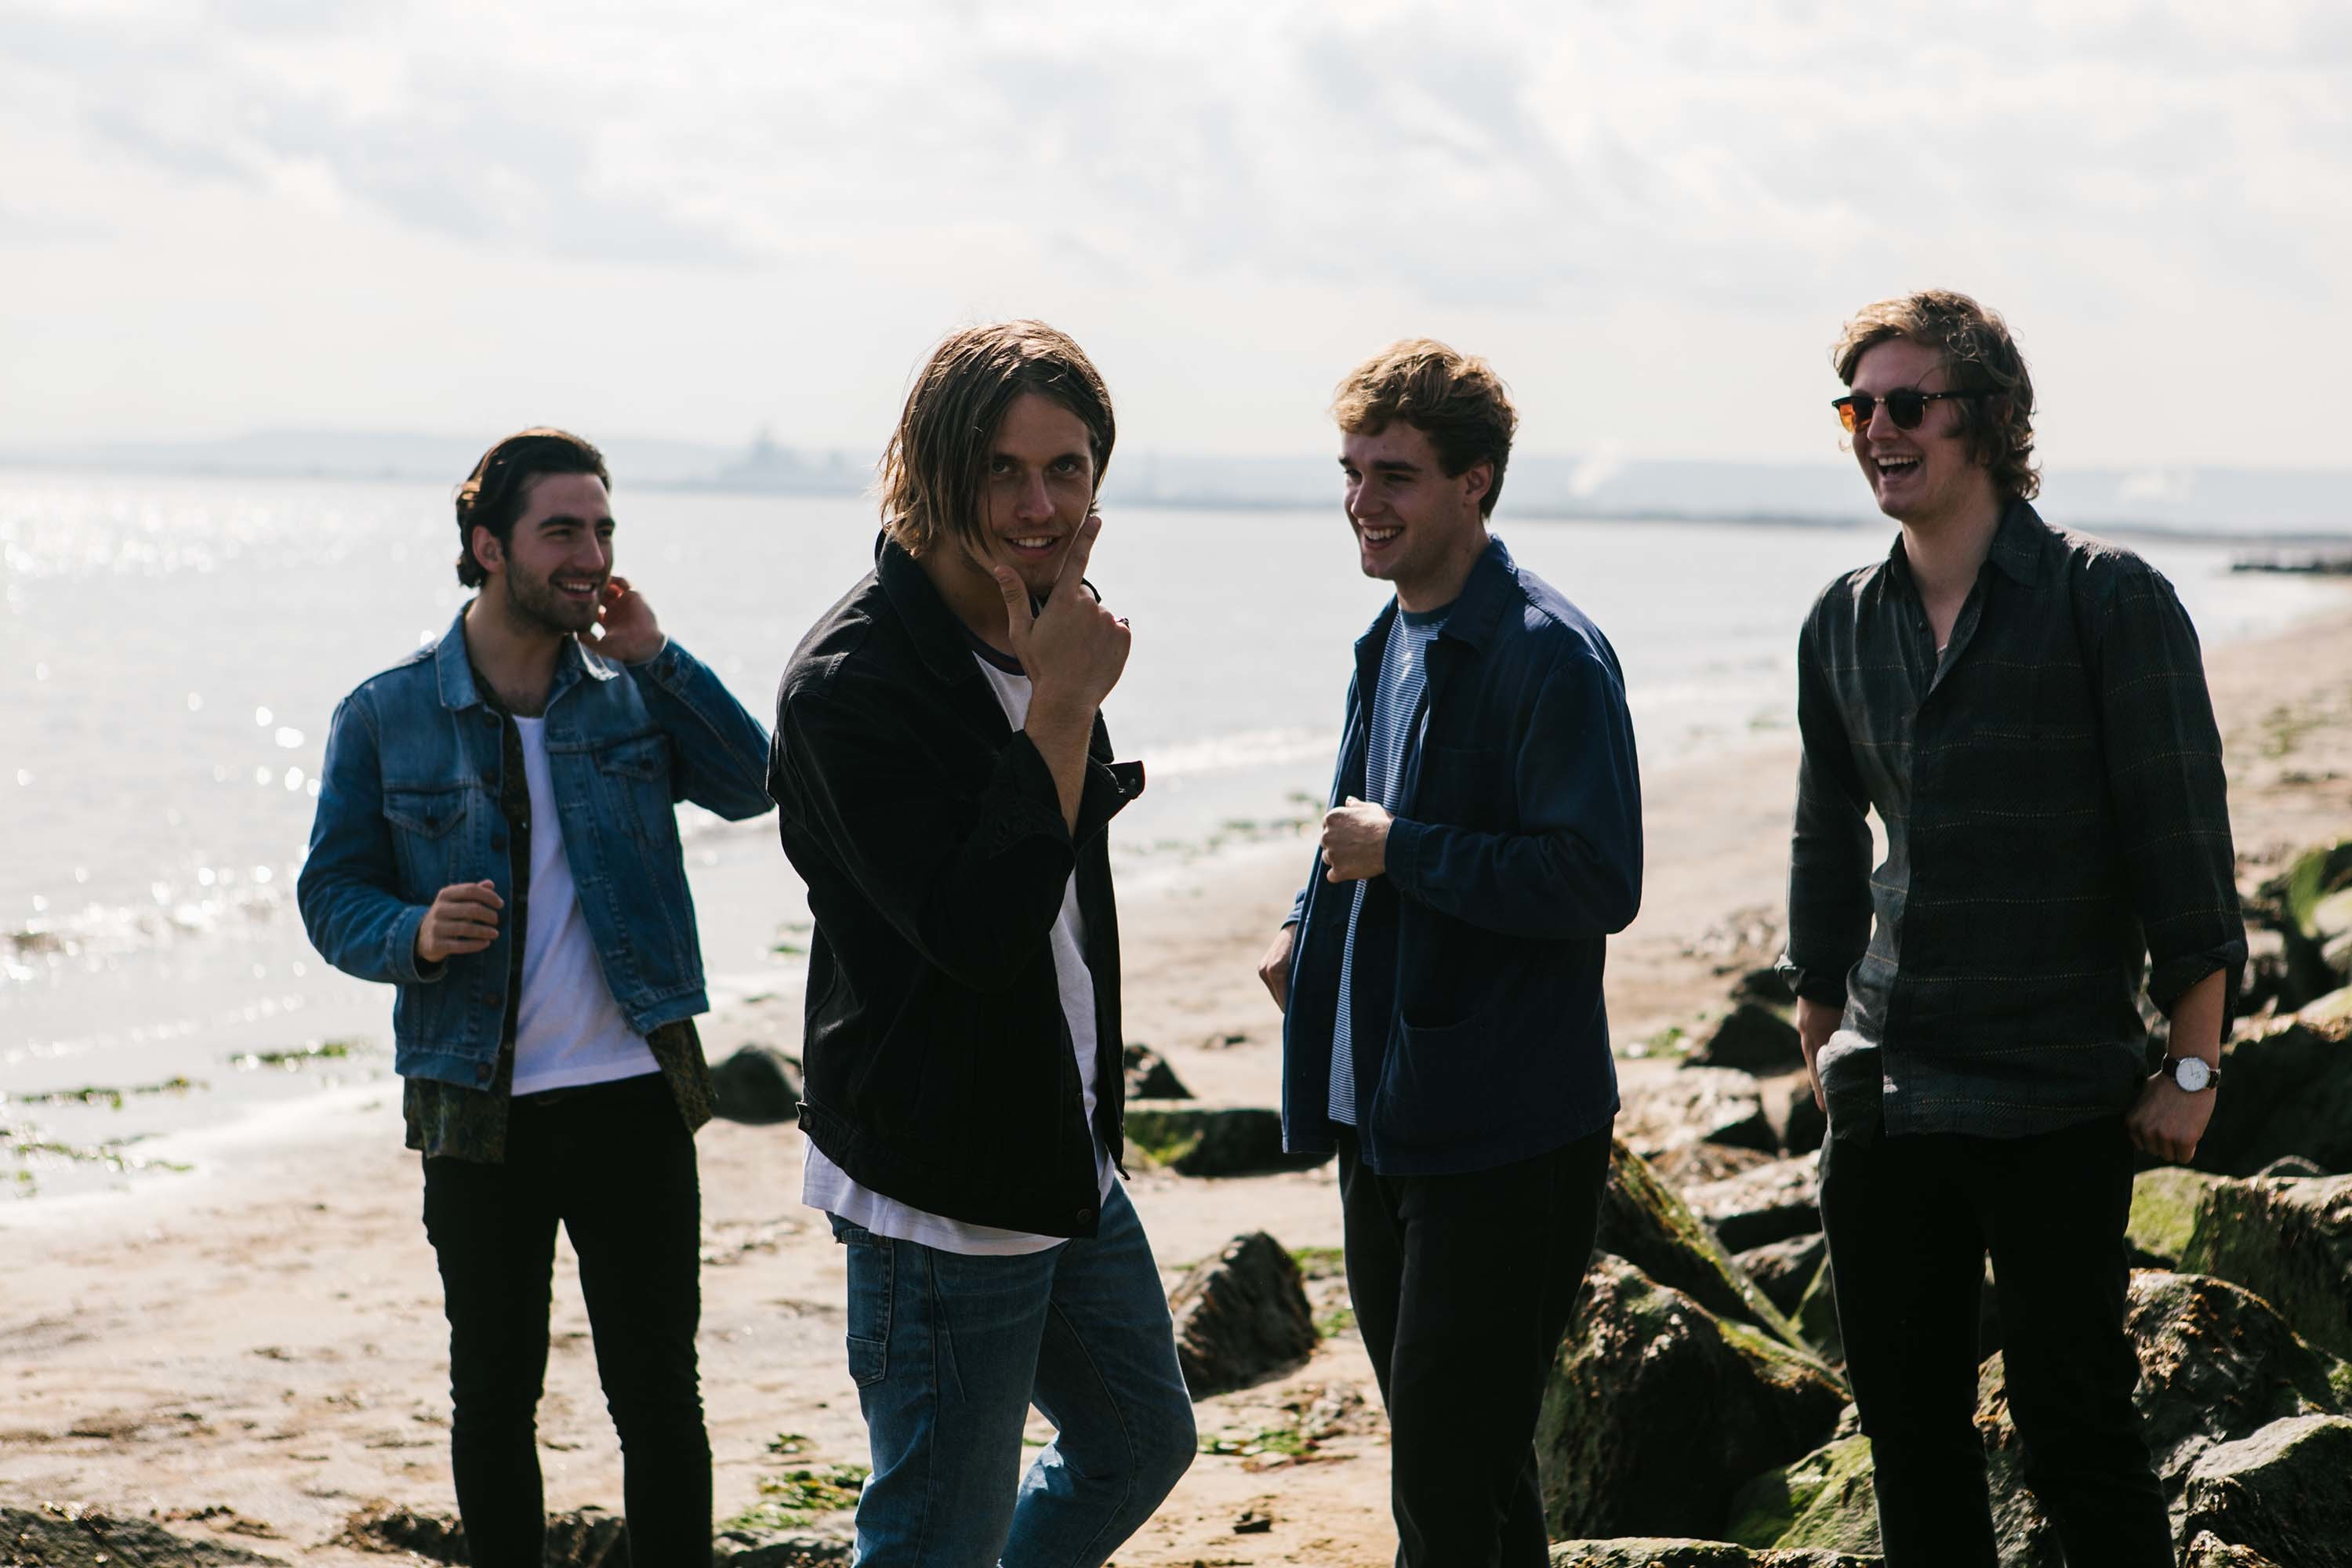 Para Alta are ready to soundtrack your hazy summer road trip on 'Home To You'